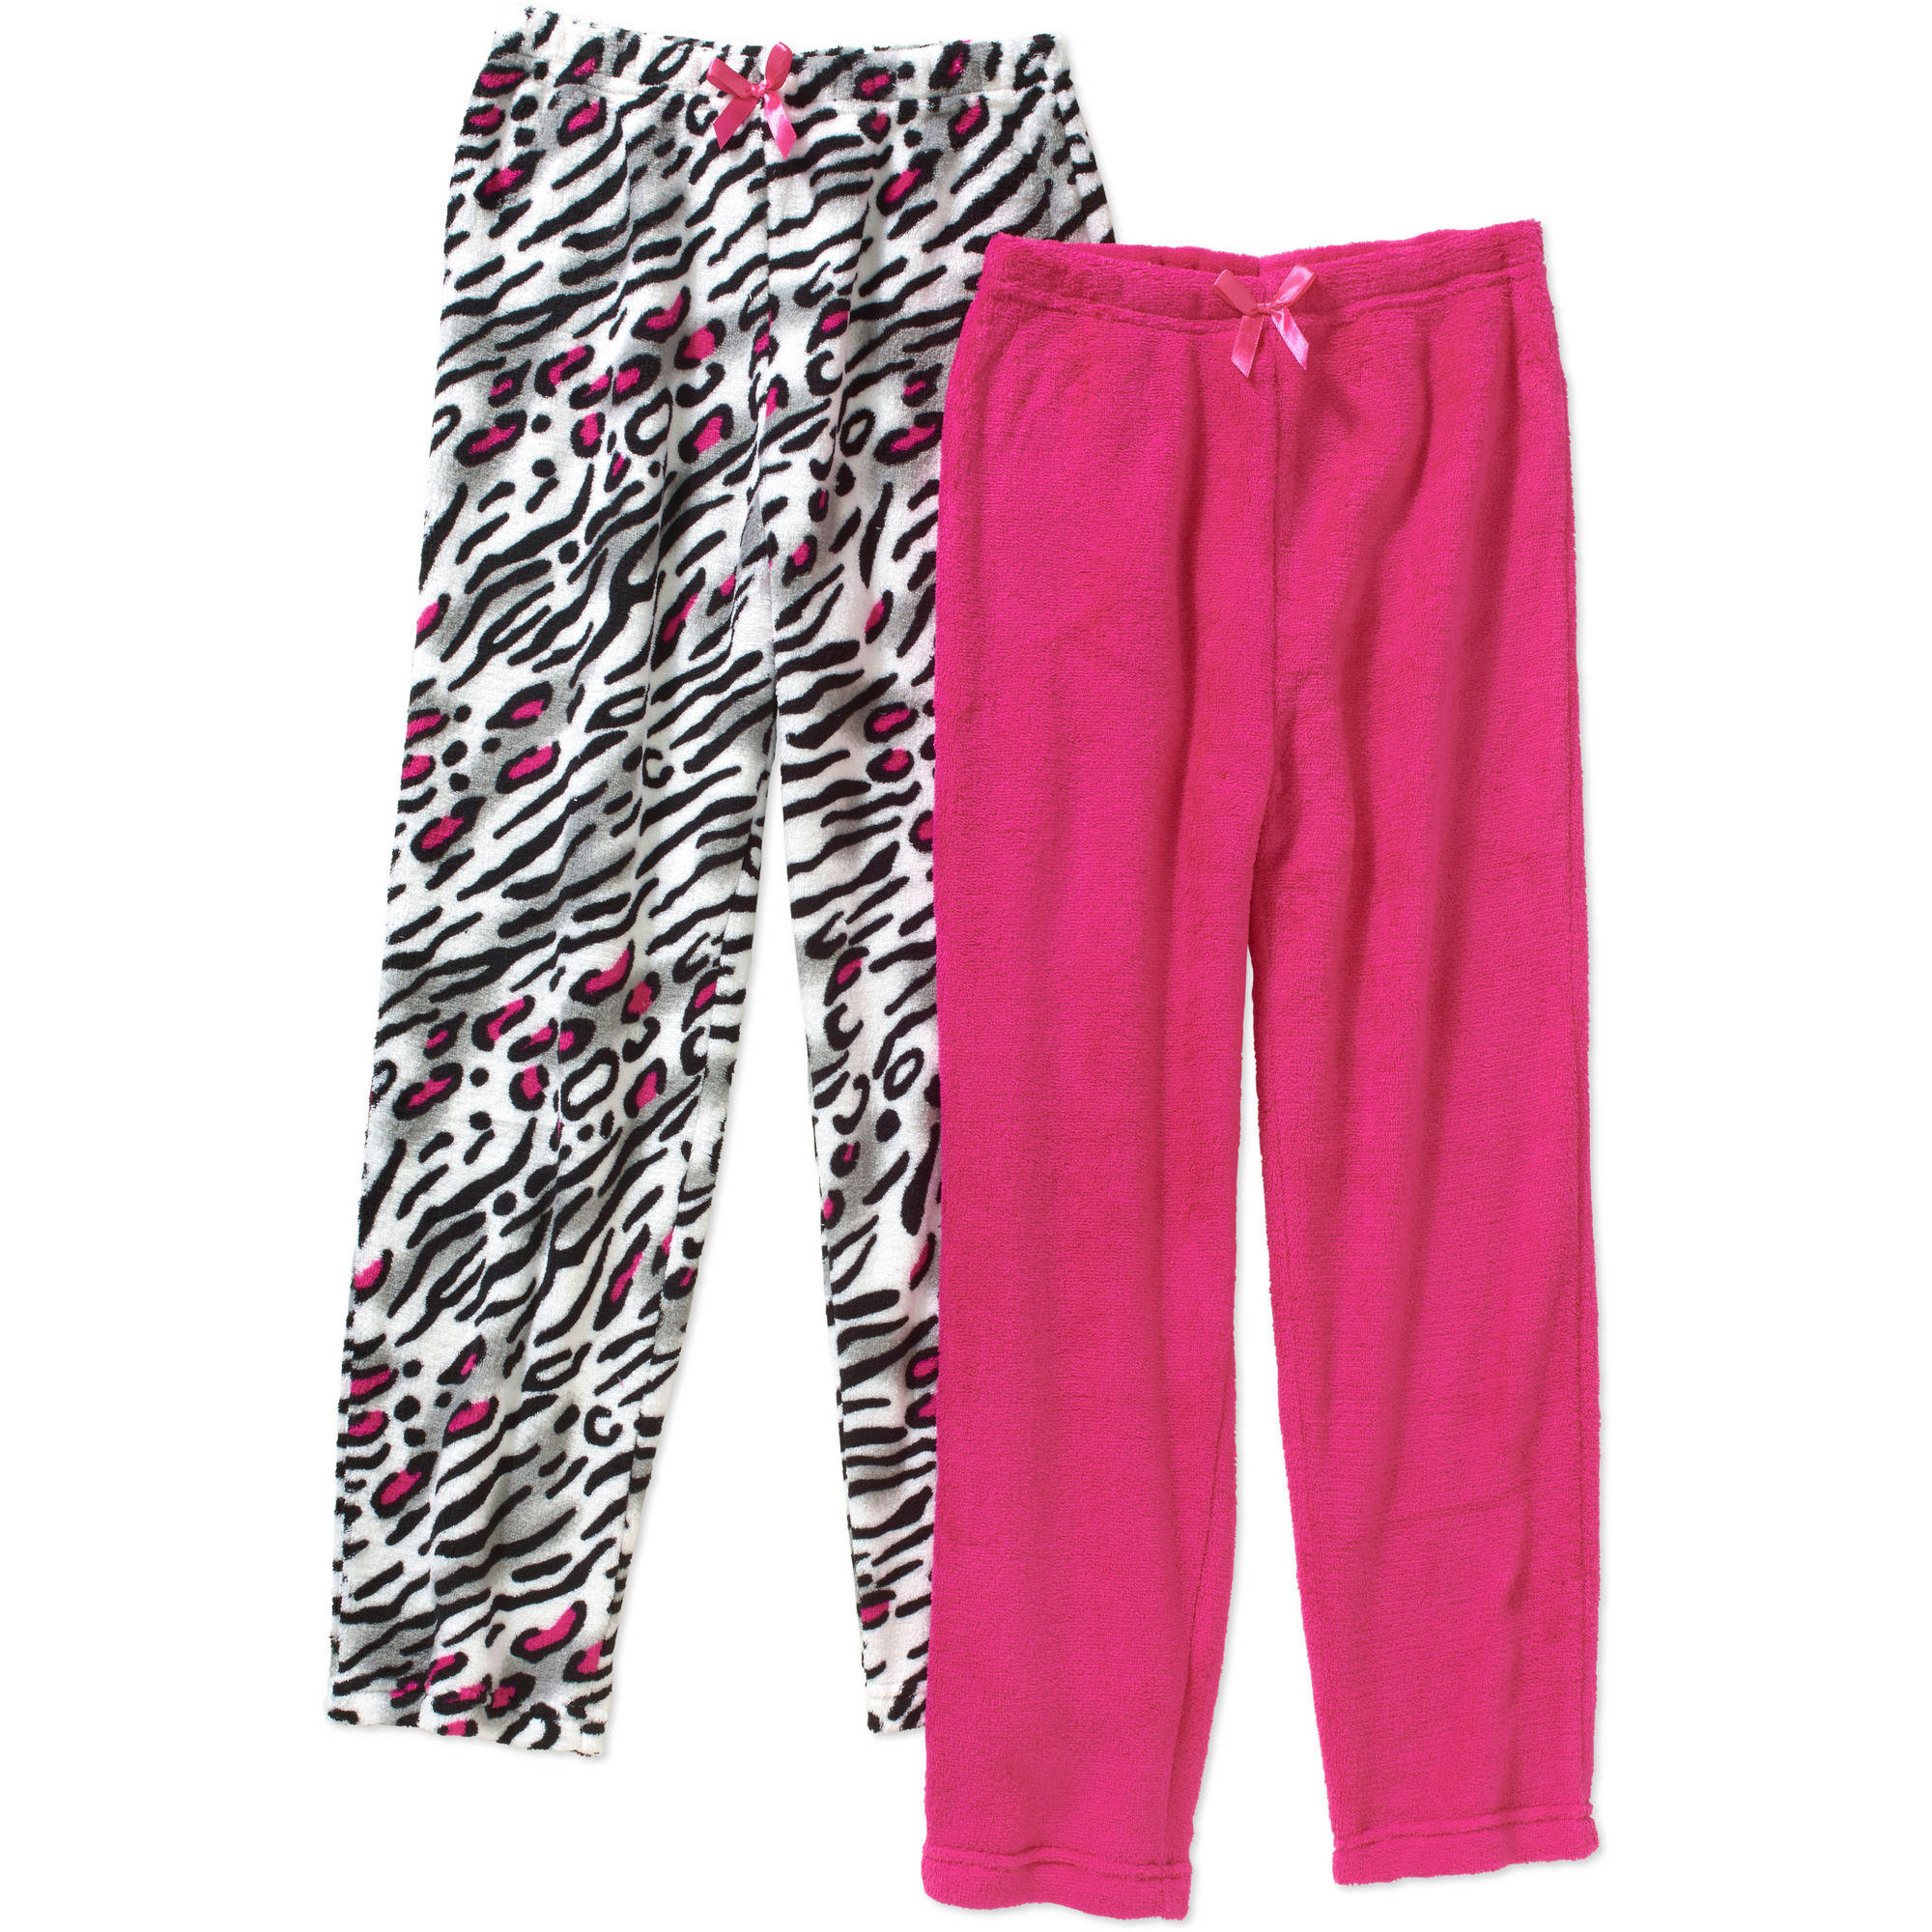 Chili Peppers Girls' Coral Fleece 2 Pack Sleep Pants